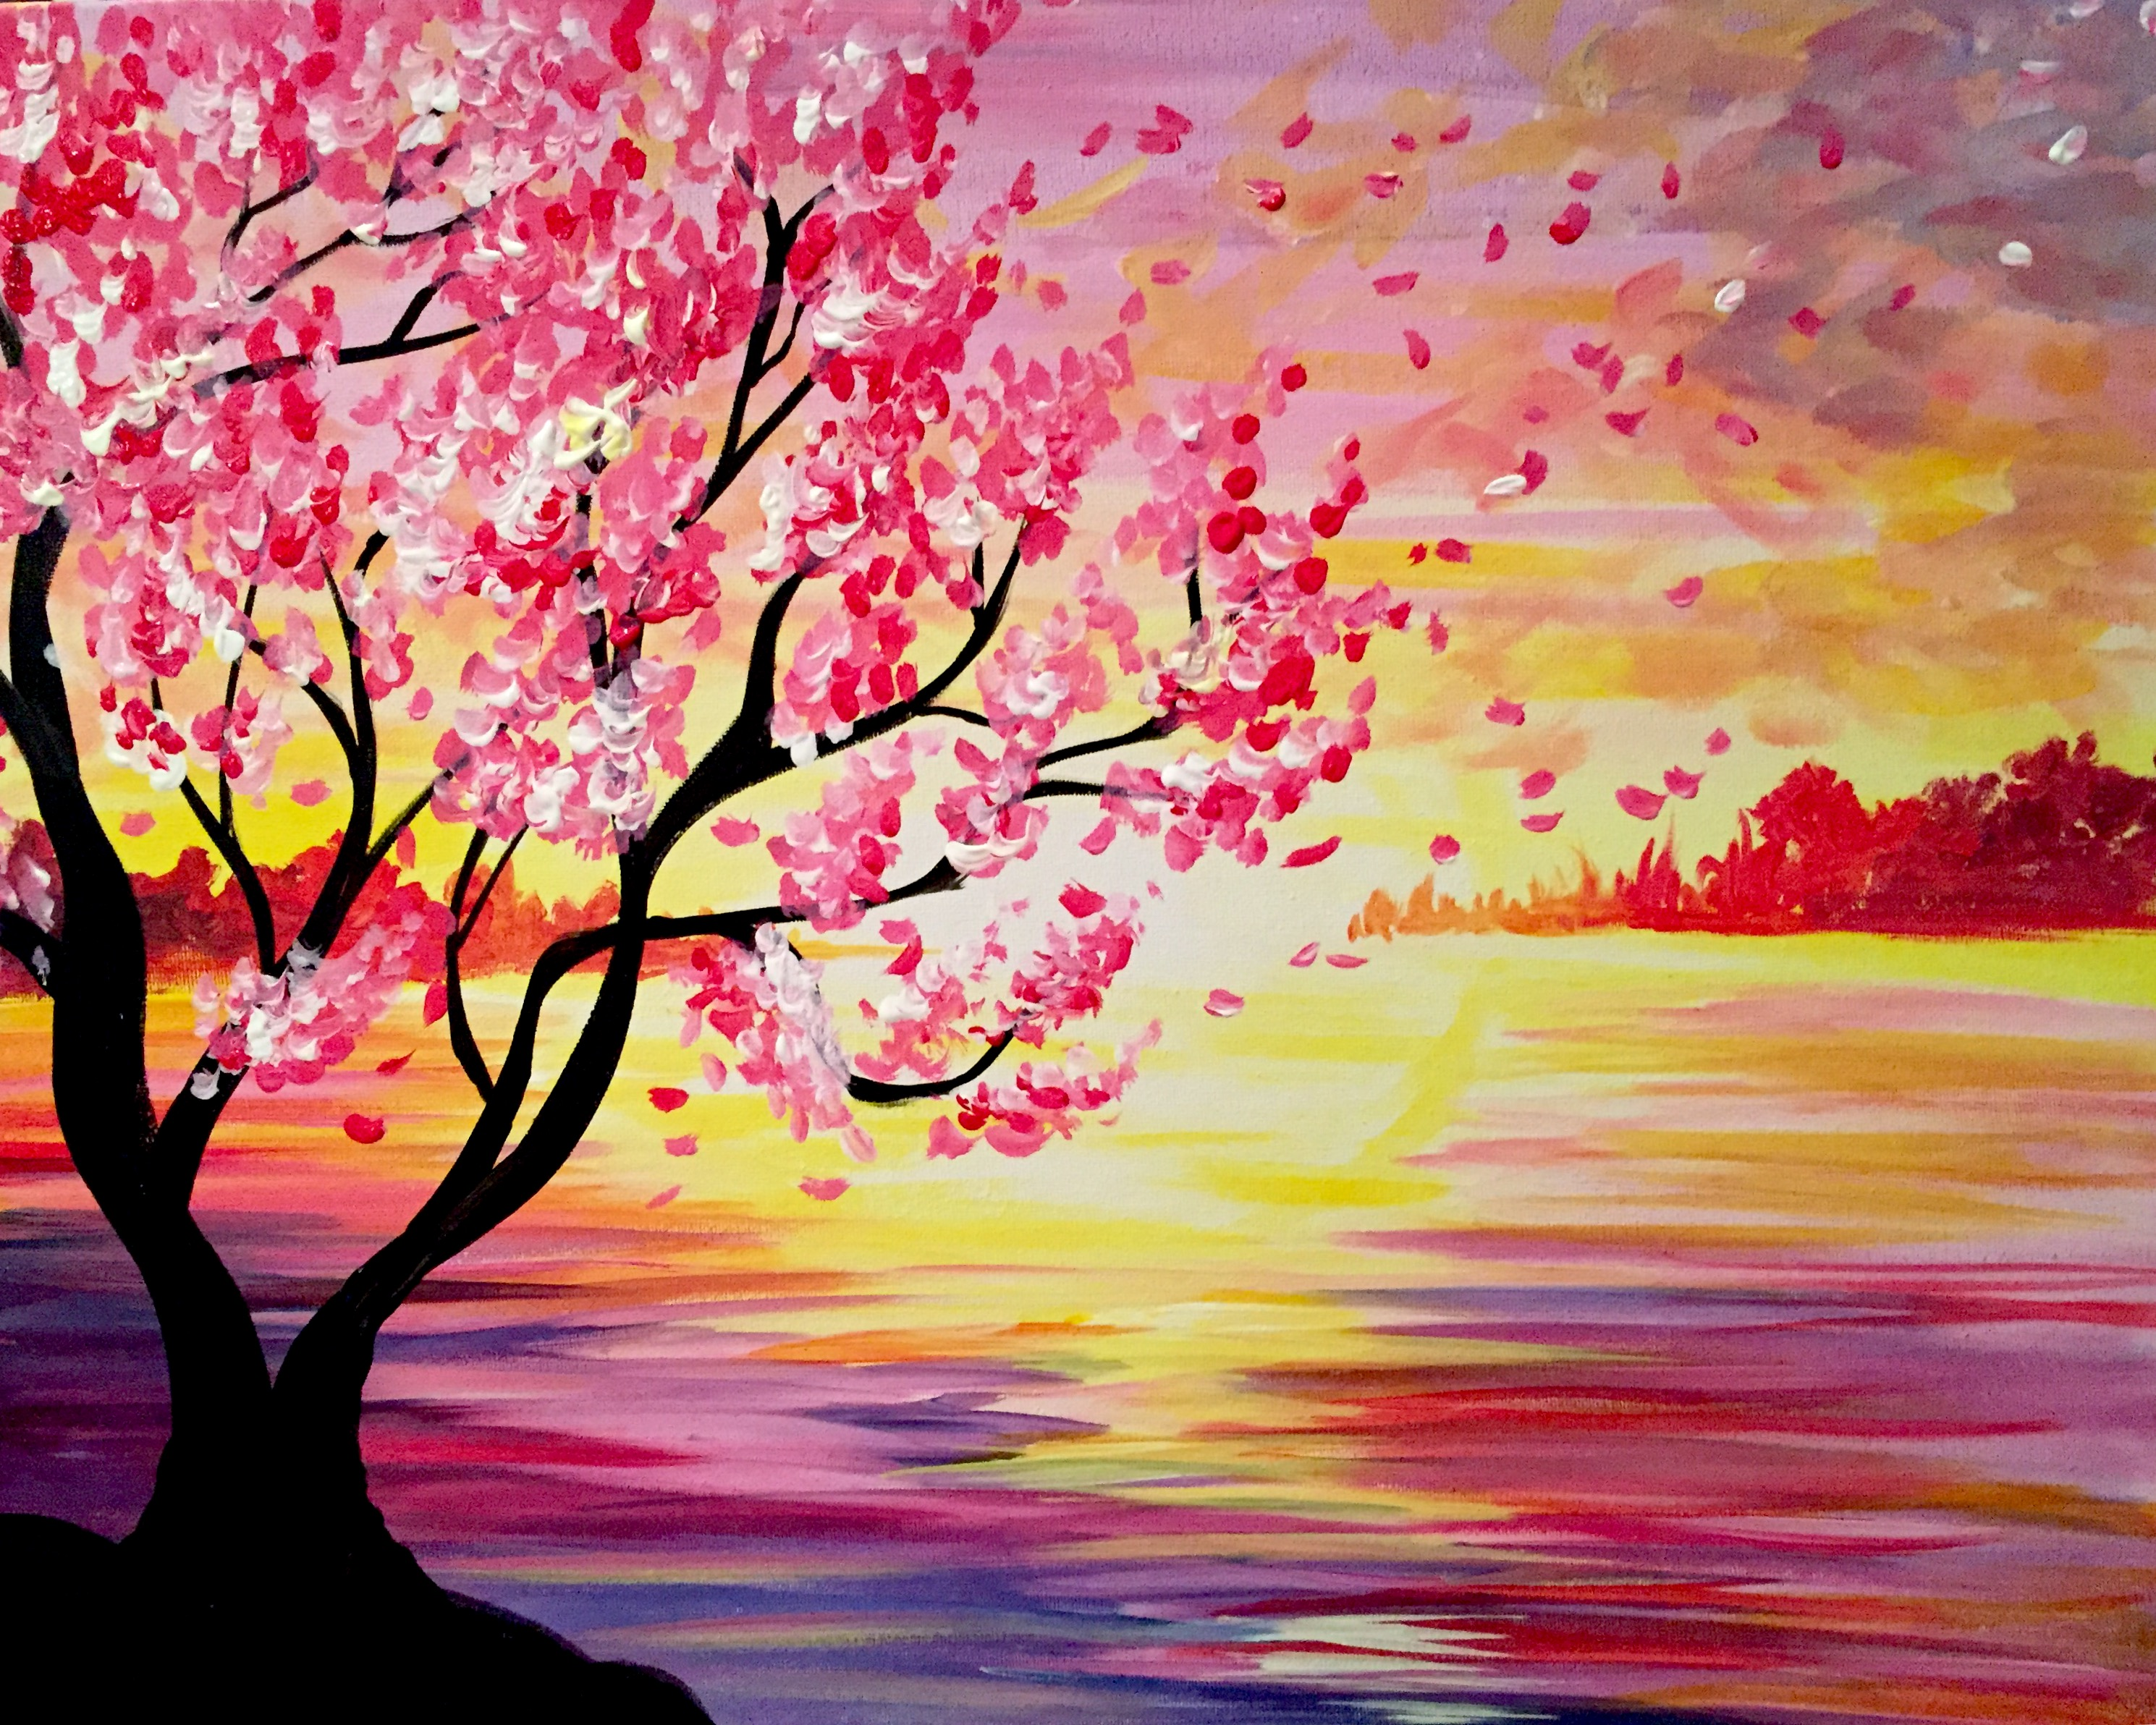 The harp 7 27 17 paint nite event for Cherry blossom mural works